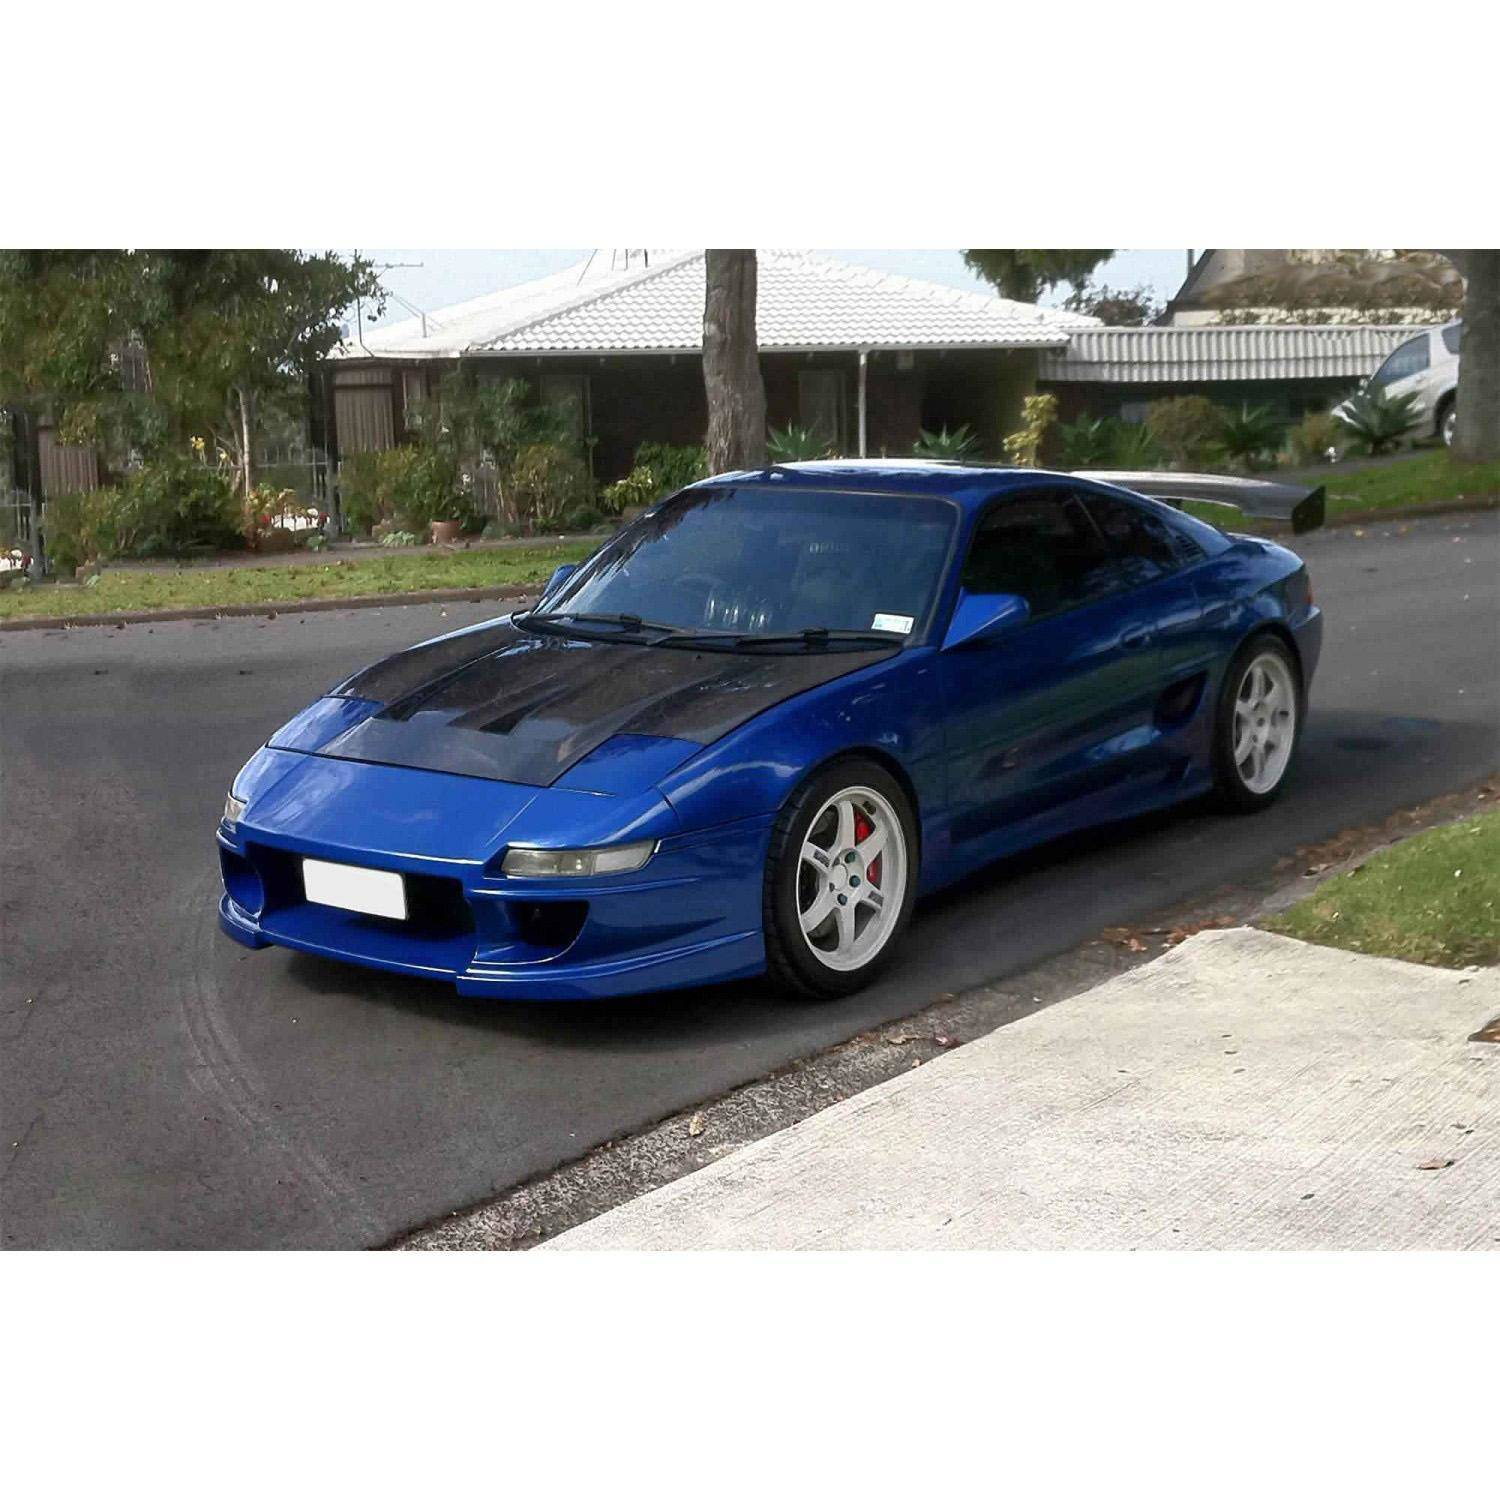 1991 Toyota Mr2 For Sale: Toyota MR2 1991-1995 Border Style 1 Piece Polyurethane